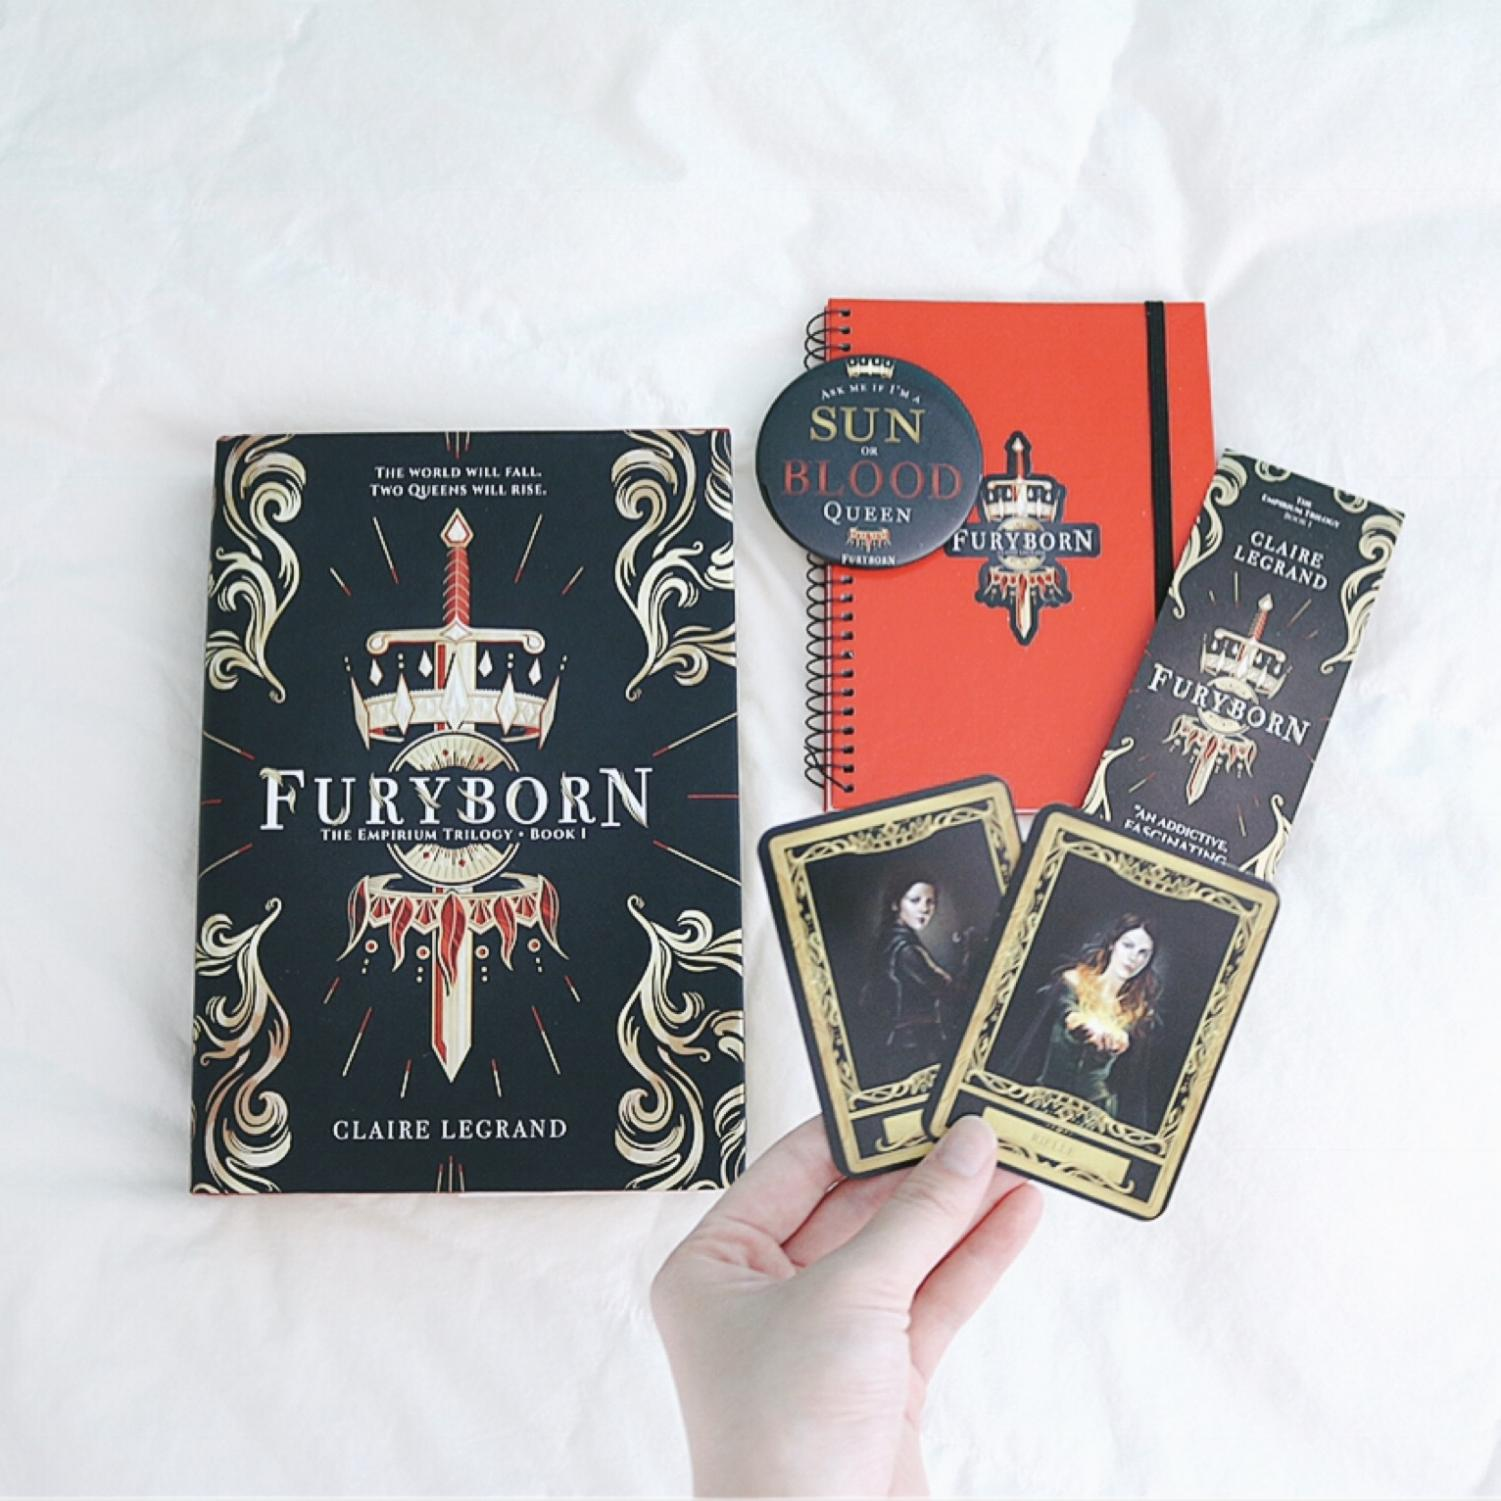 Furyborn swag was given out at Claire Legrand's book signing event.